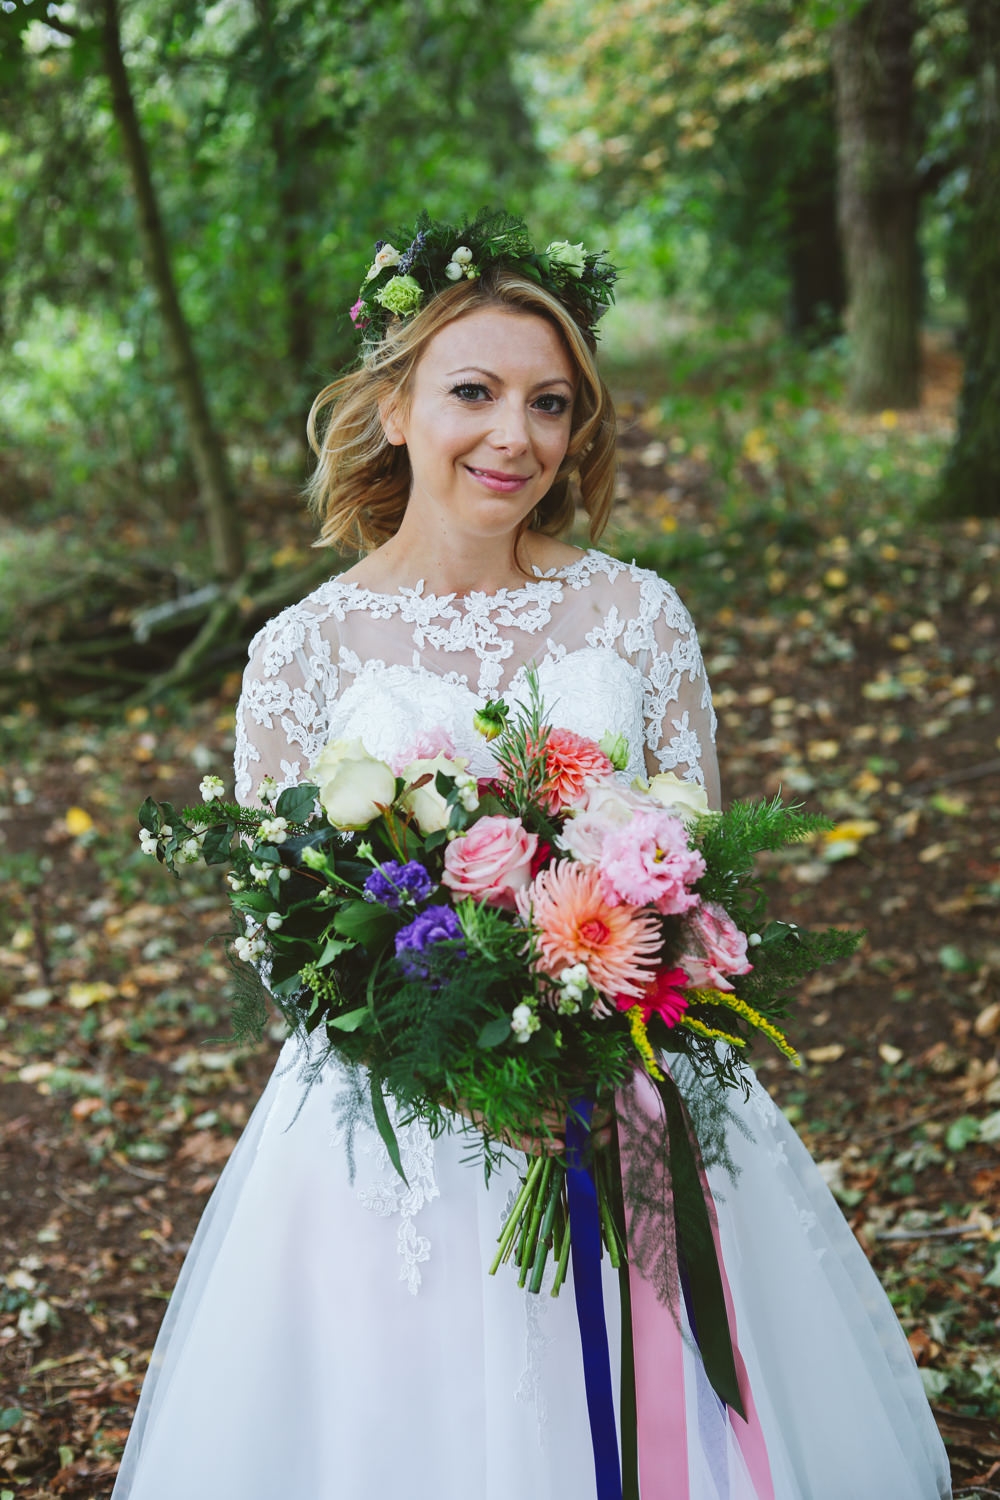 Bride Bridal Flower Crown Bouquet Tea Length Short Dress Lace Sleeves Enchanted Garden Events Wedding Sharon Cooper Photography